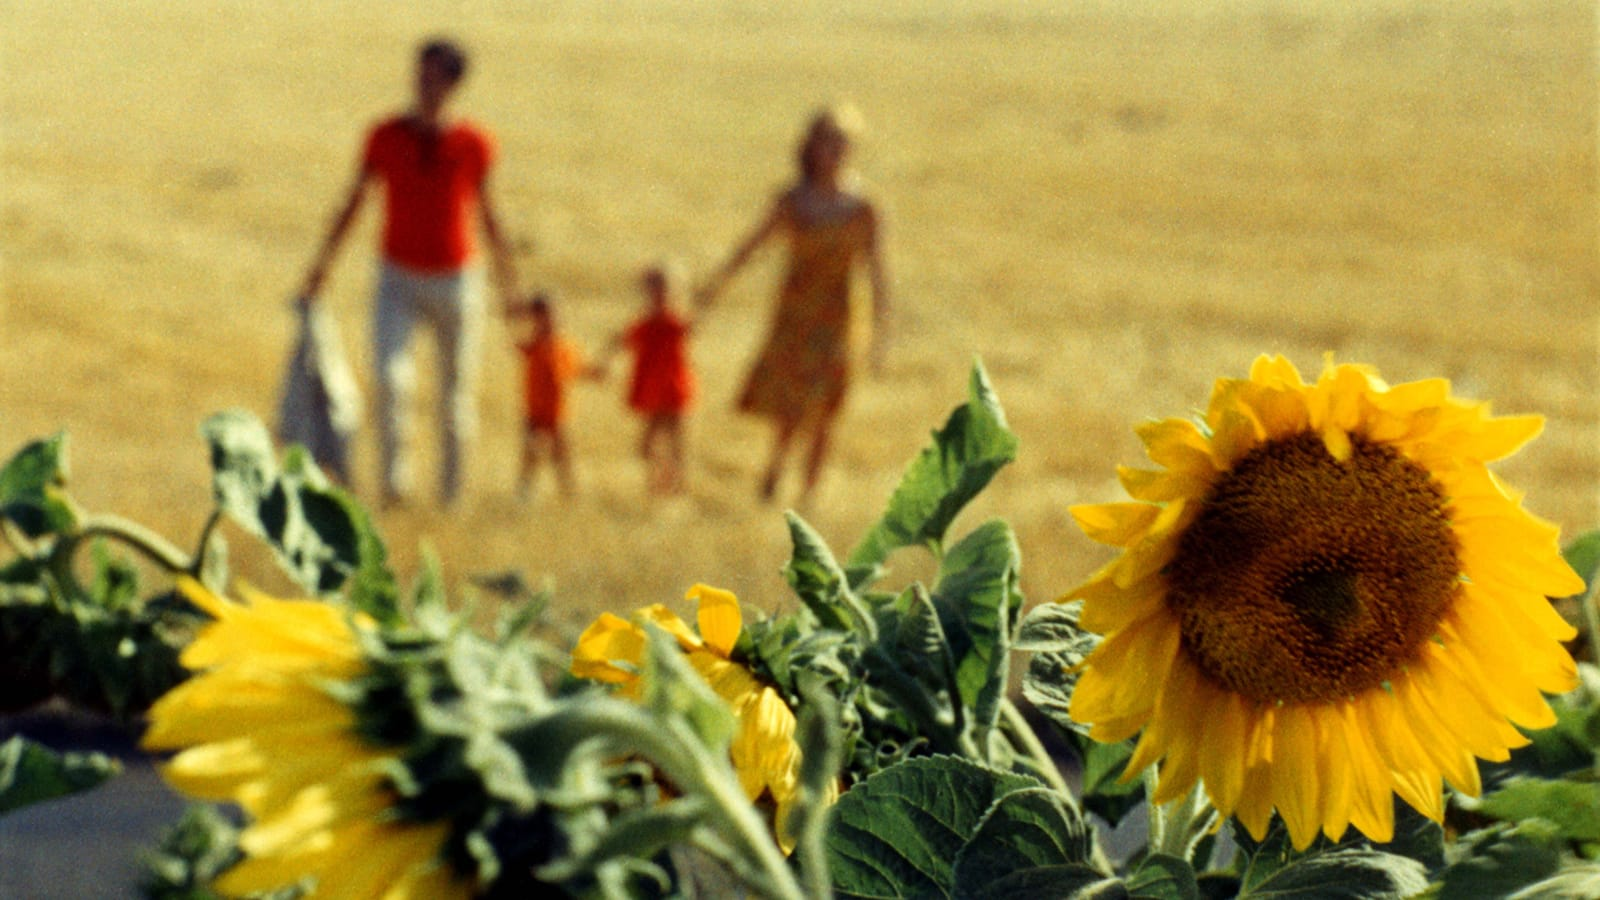 The family, a man, two small children, and a woman dressed in shades of red and orange, are blurred out in the background, standing in a field. In the foreground the focus is on vibrant yellow sunflowers.